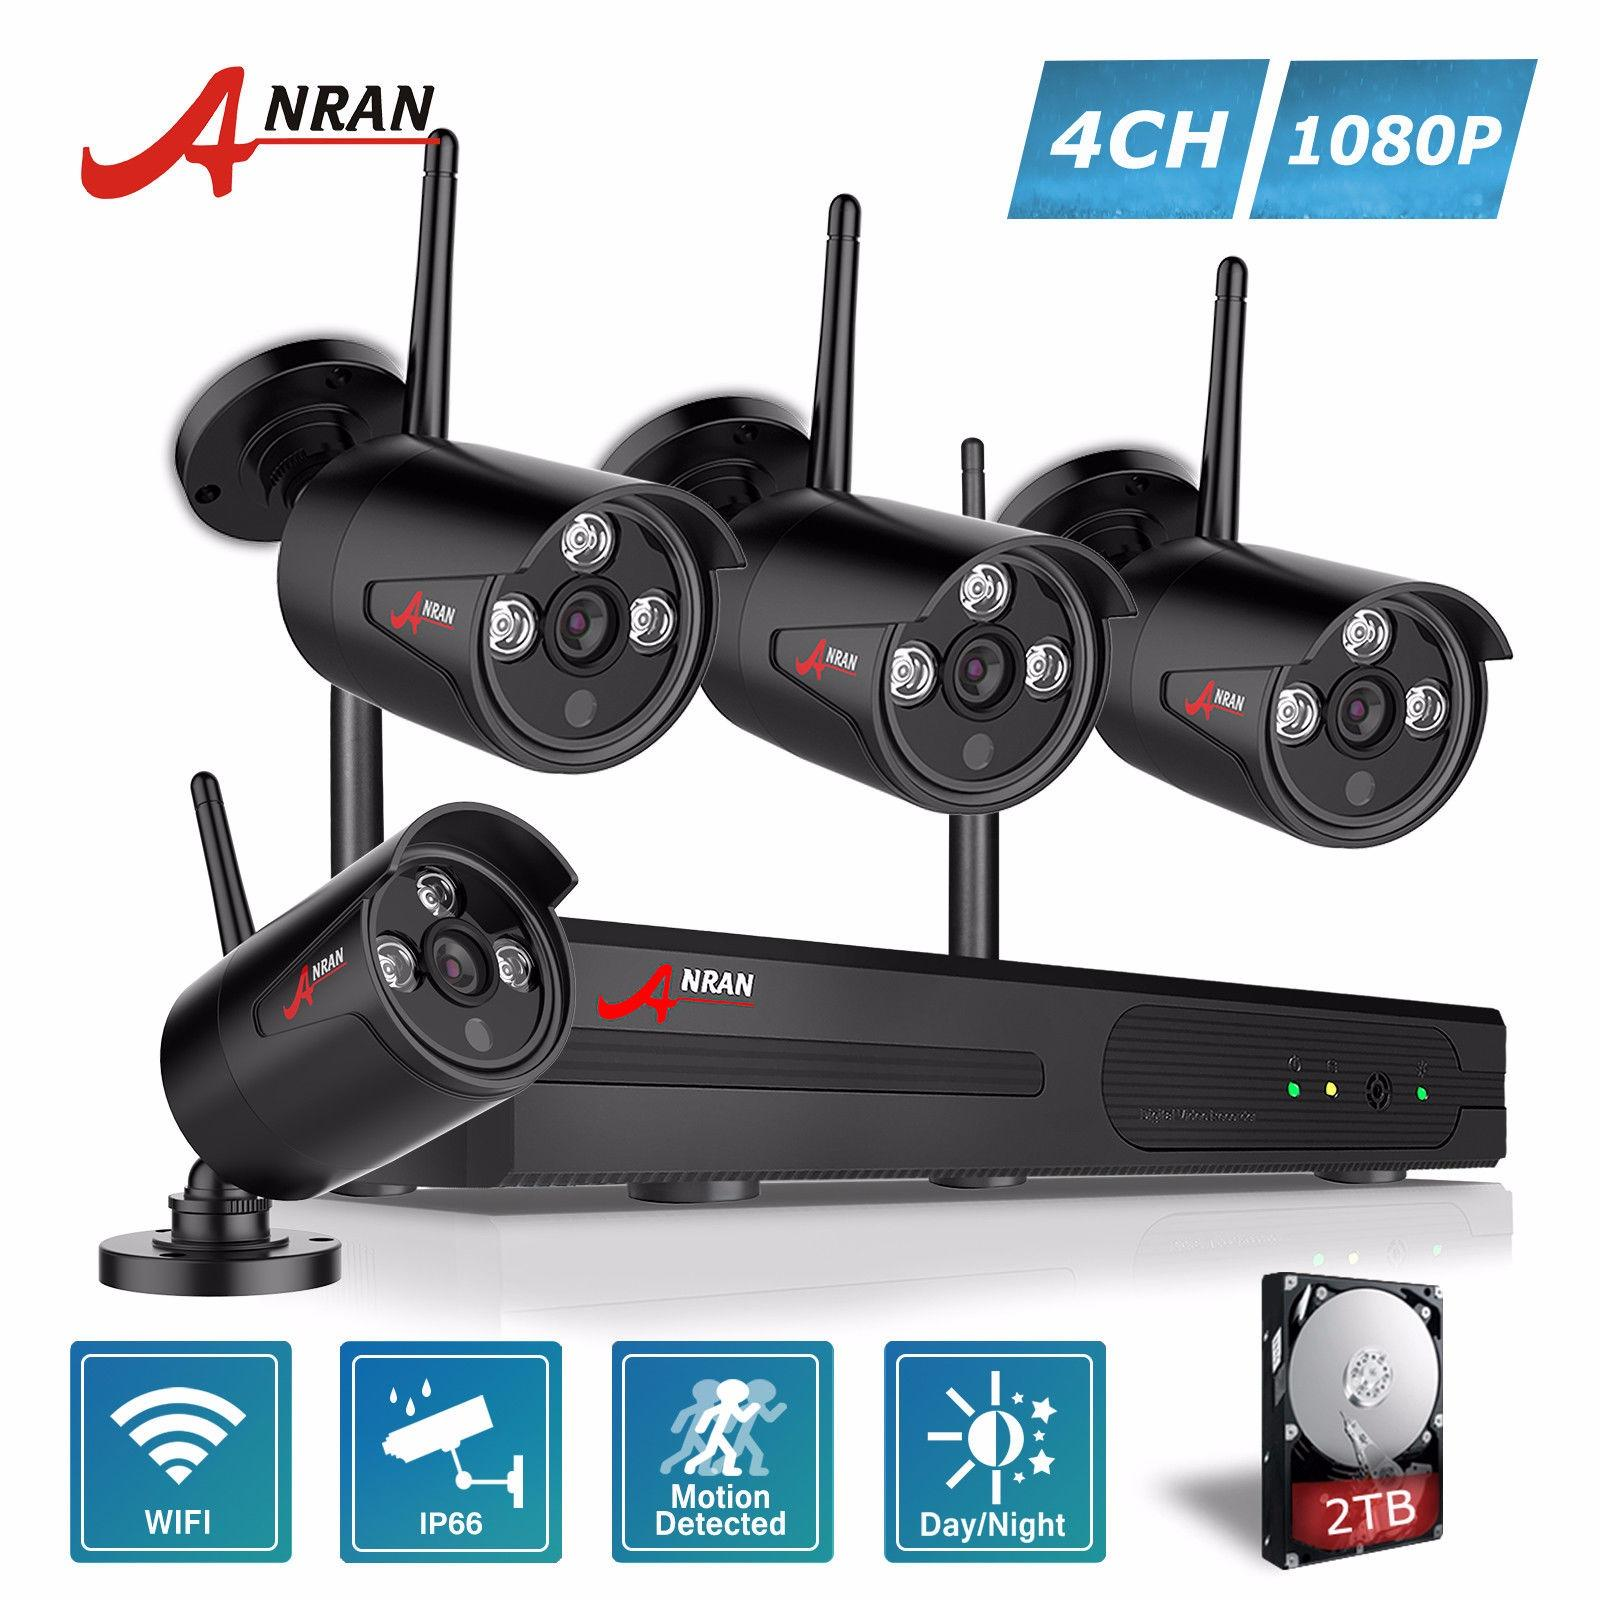 ANRAN 4 Channel HD 1080P Wireless Network/IP Security Camera System 2.0 Megapixel Wireless Indoor/Outdoor IR Bullet IP Cameras